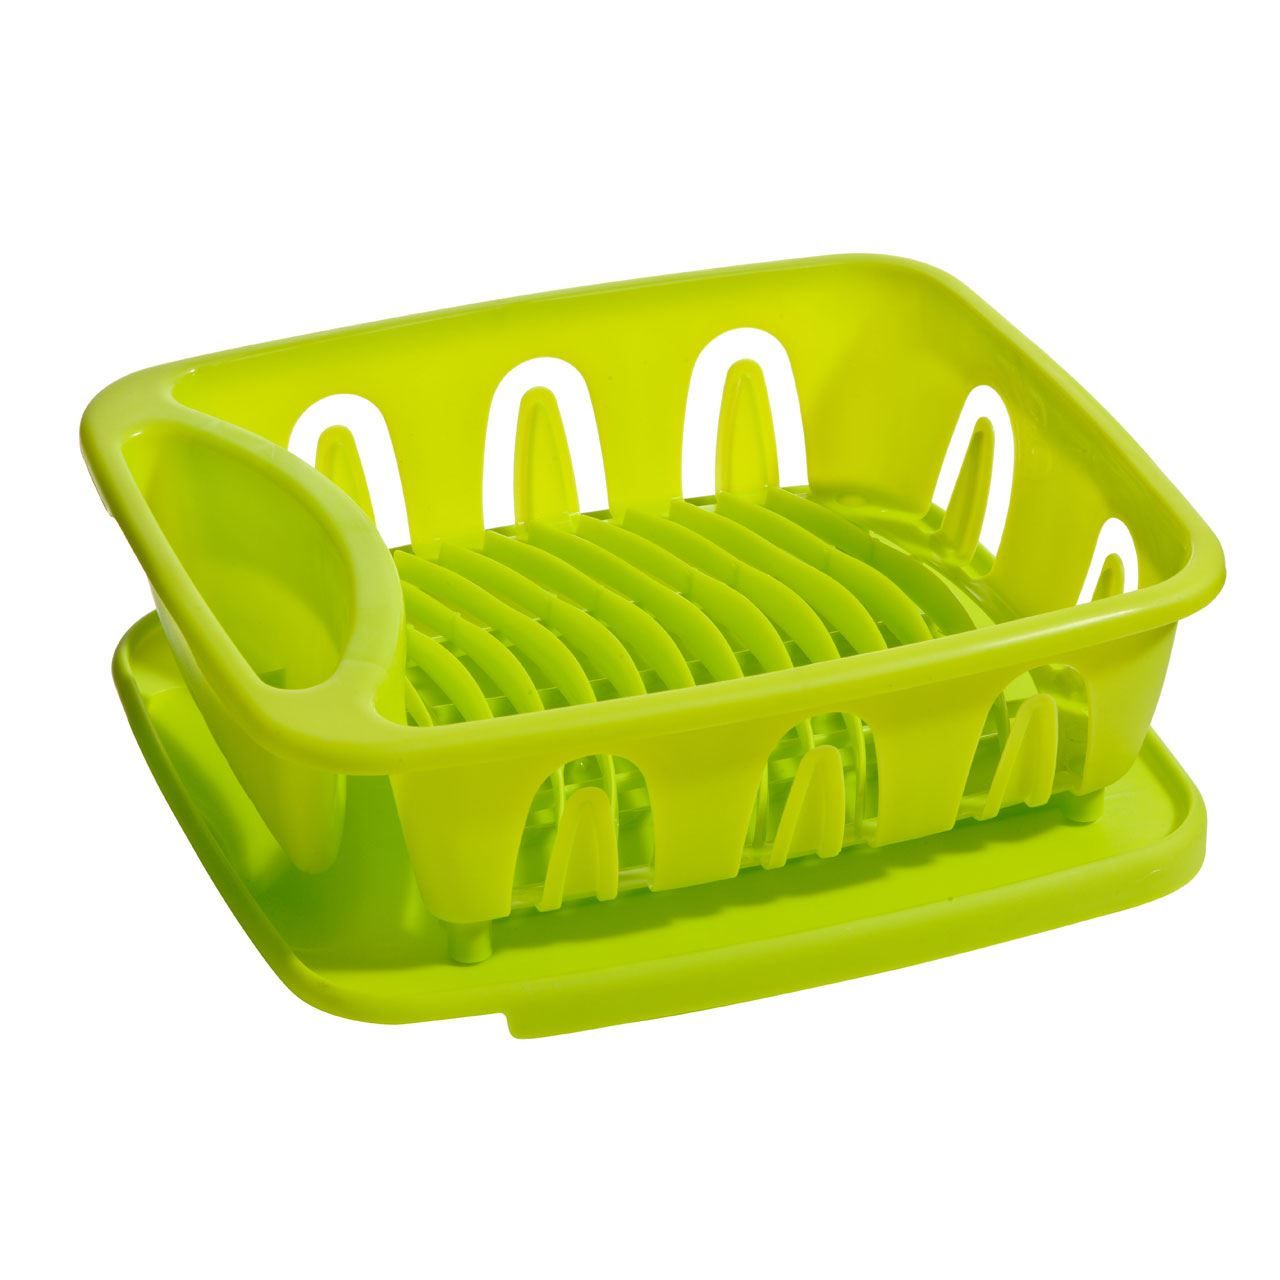 Dish Drainer Plastic Removable Tray Kitchen Accessories Various Colours New Ebay